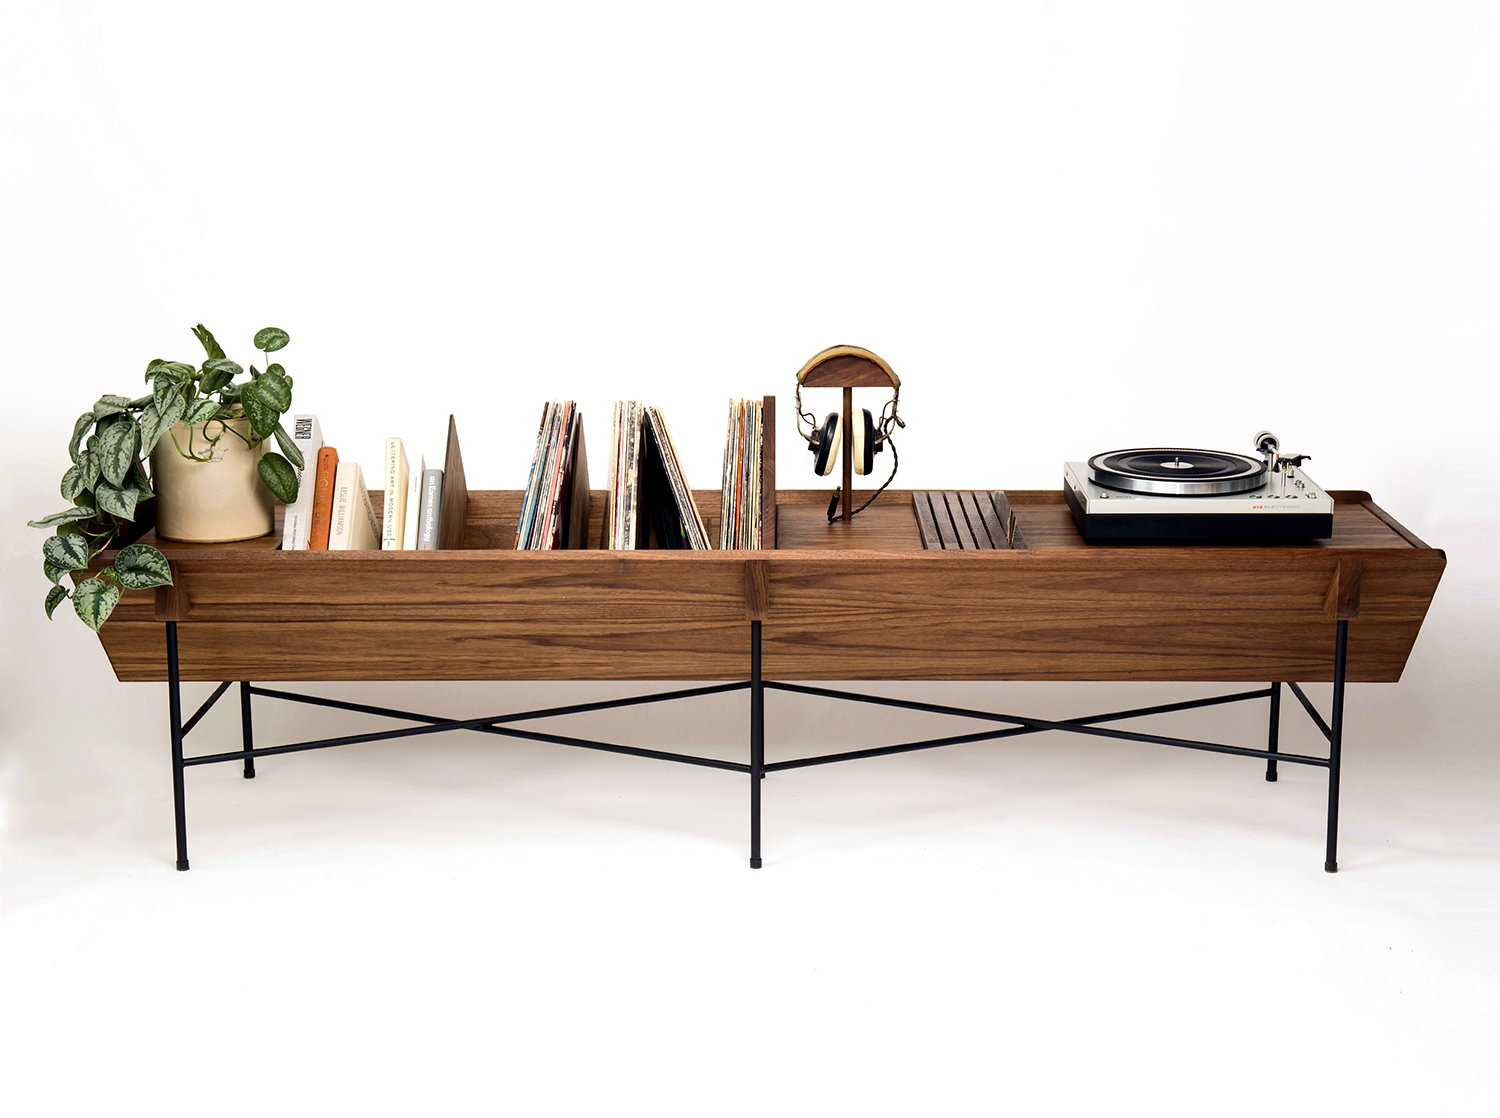 OPEN 45 Credenza by Adam Friedman, wood table for record player